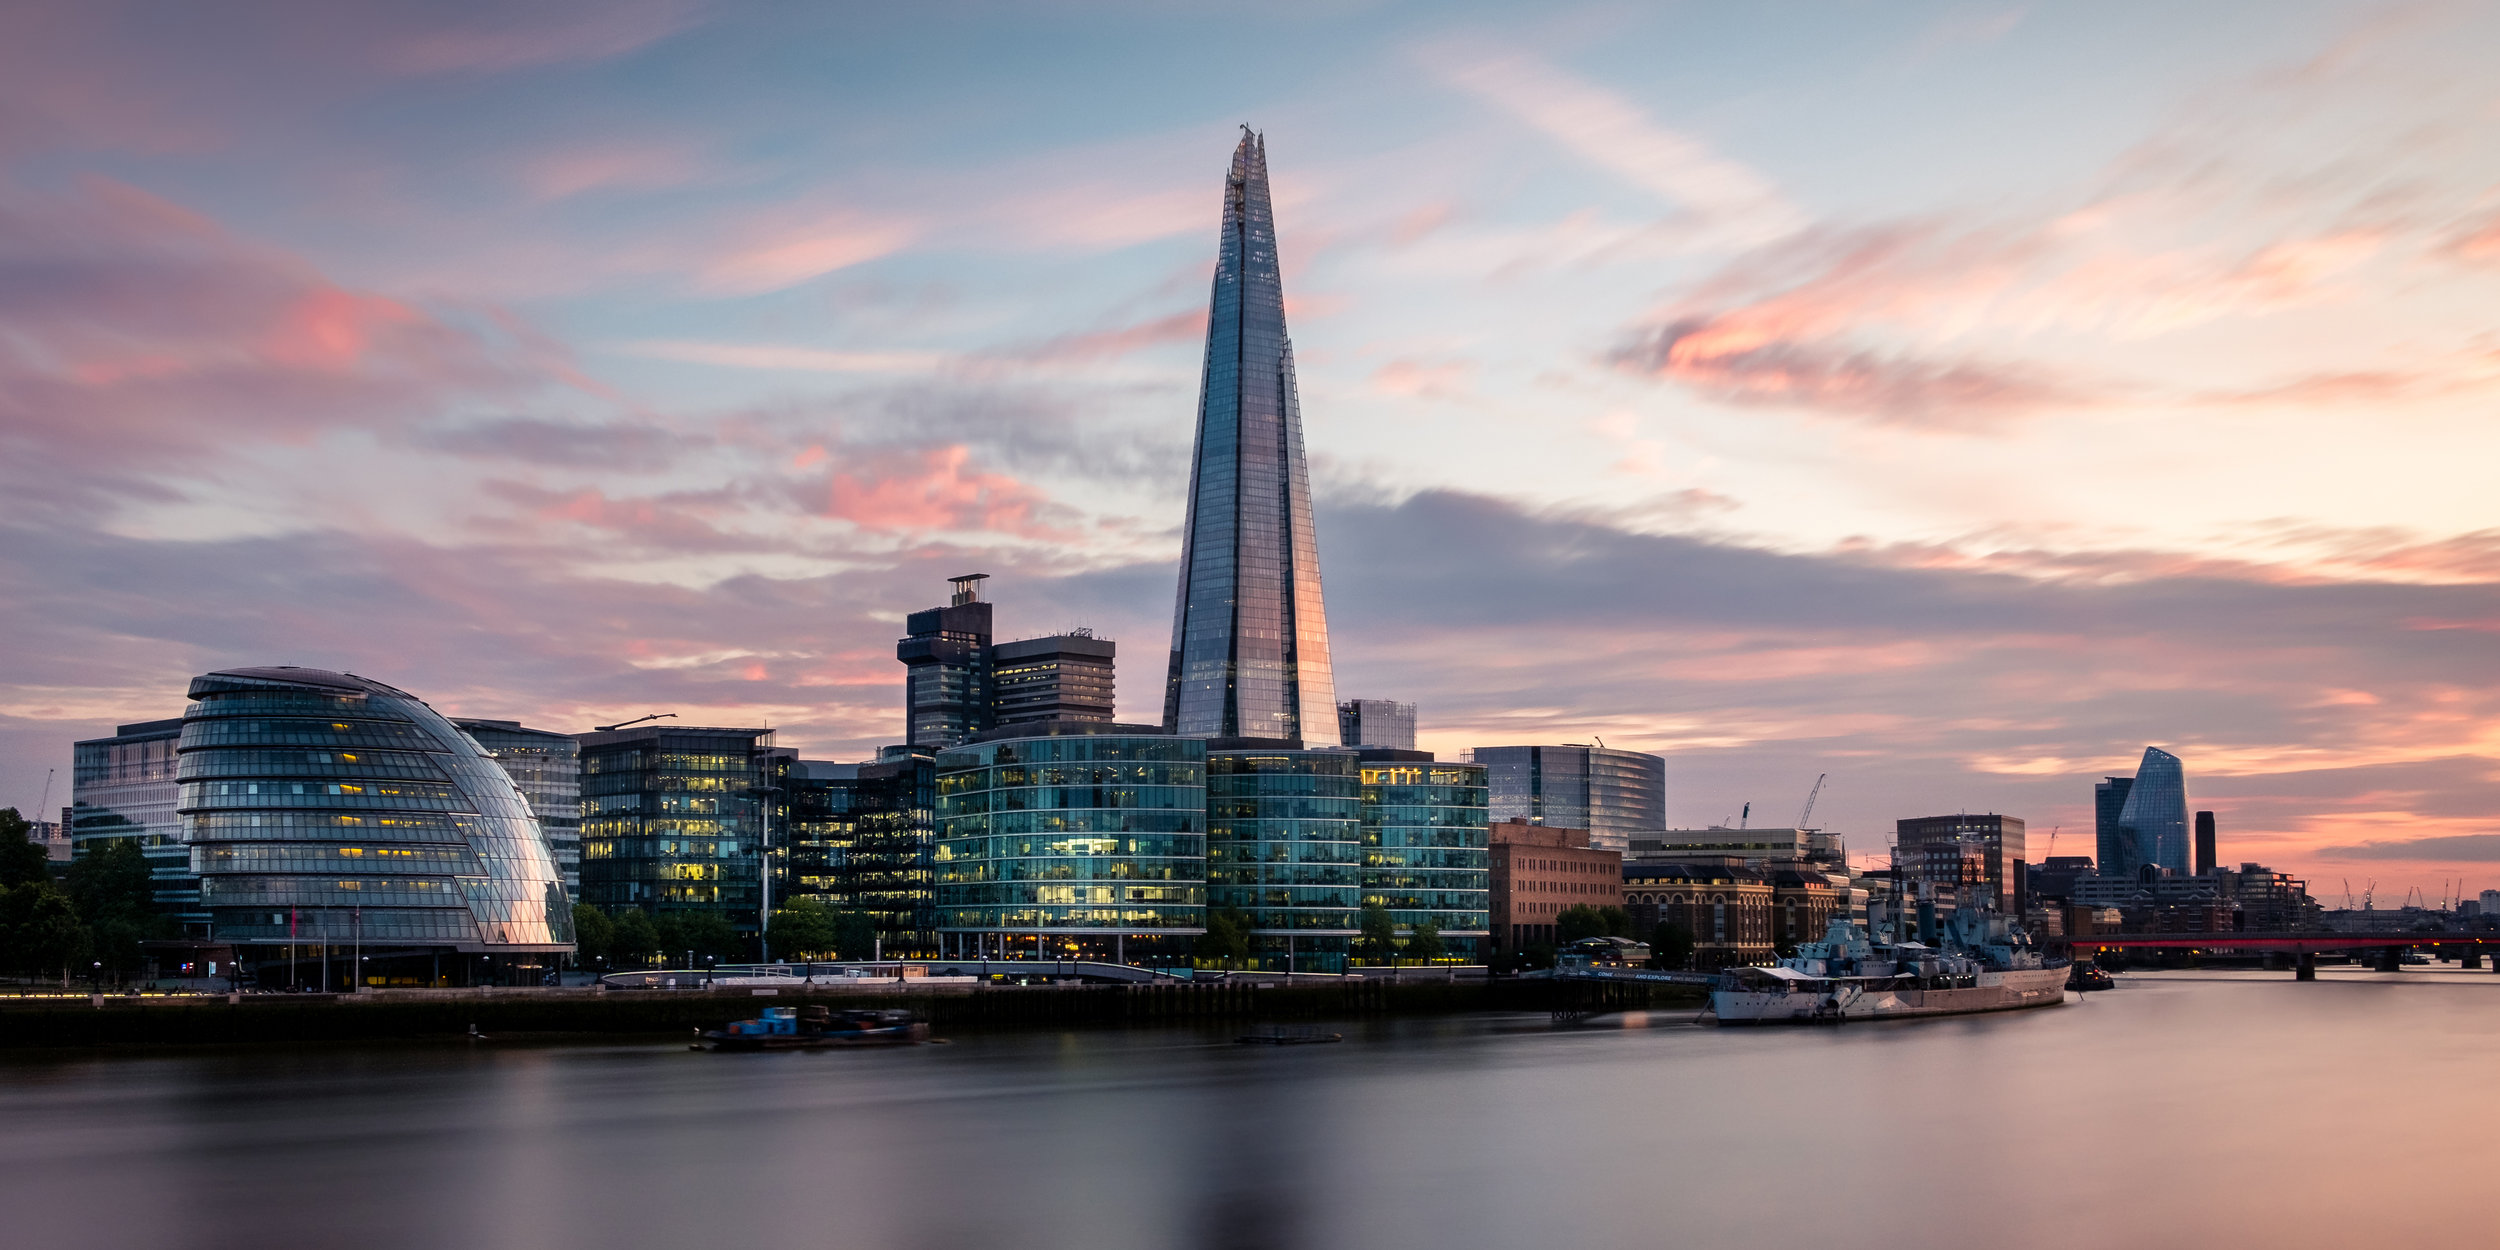 The Shard in London taken at sunset by Trevor Sherwin